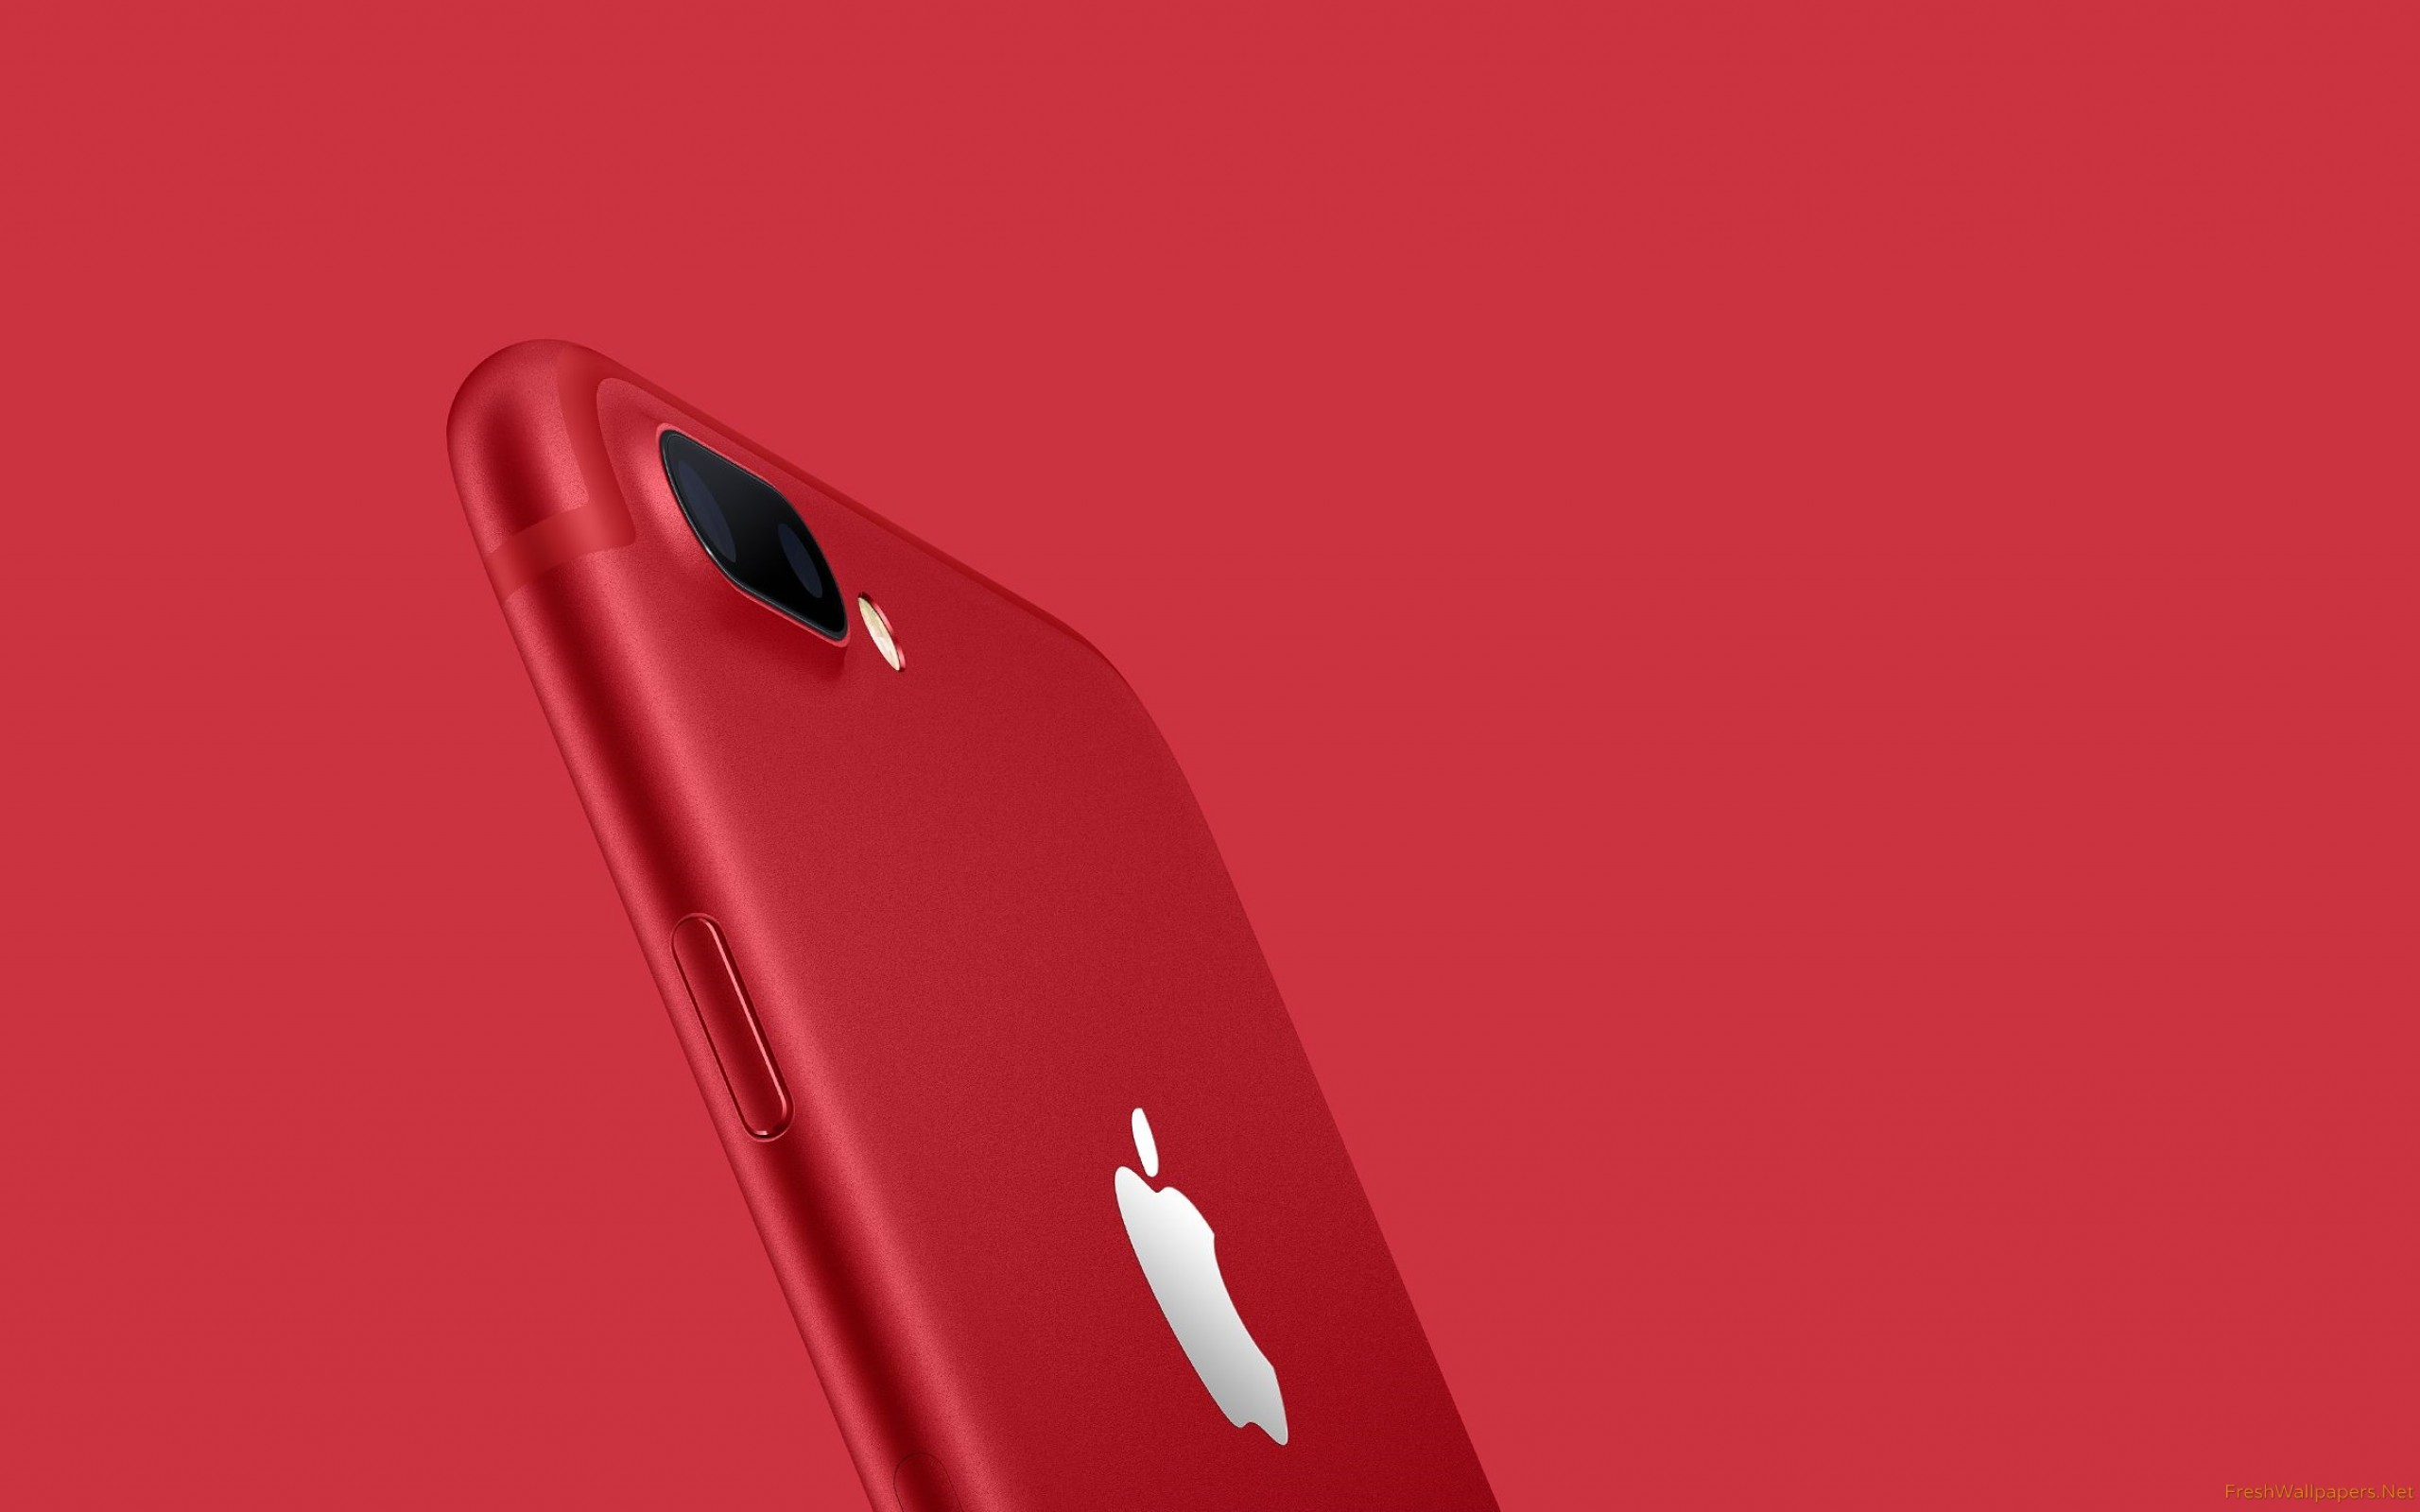 Iphone 7 Plus Red Wallpaper - Iphone Red 7 Plus , HD Wallpaper & Backgrounds